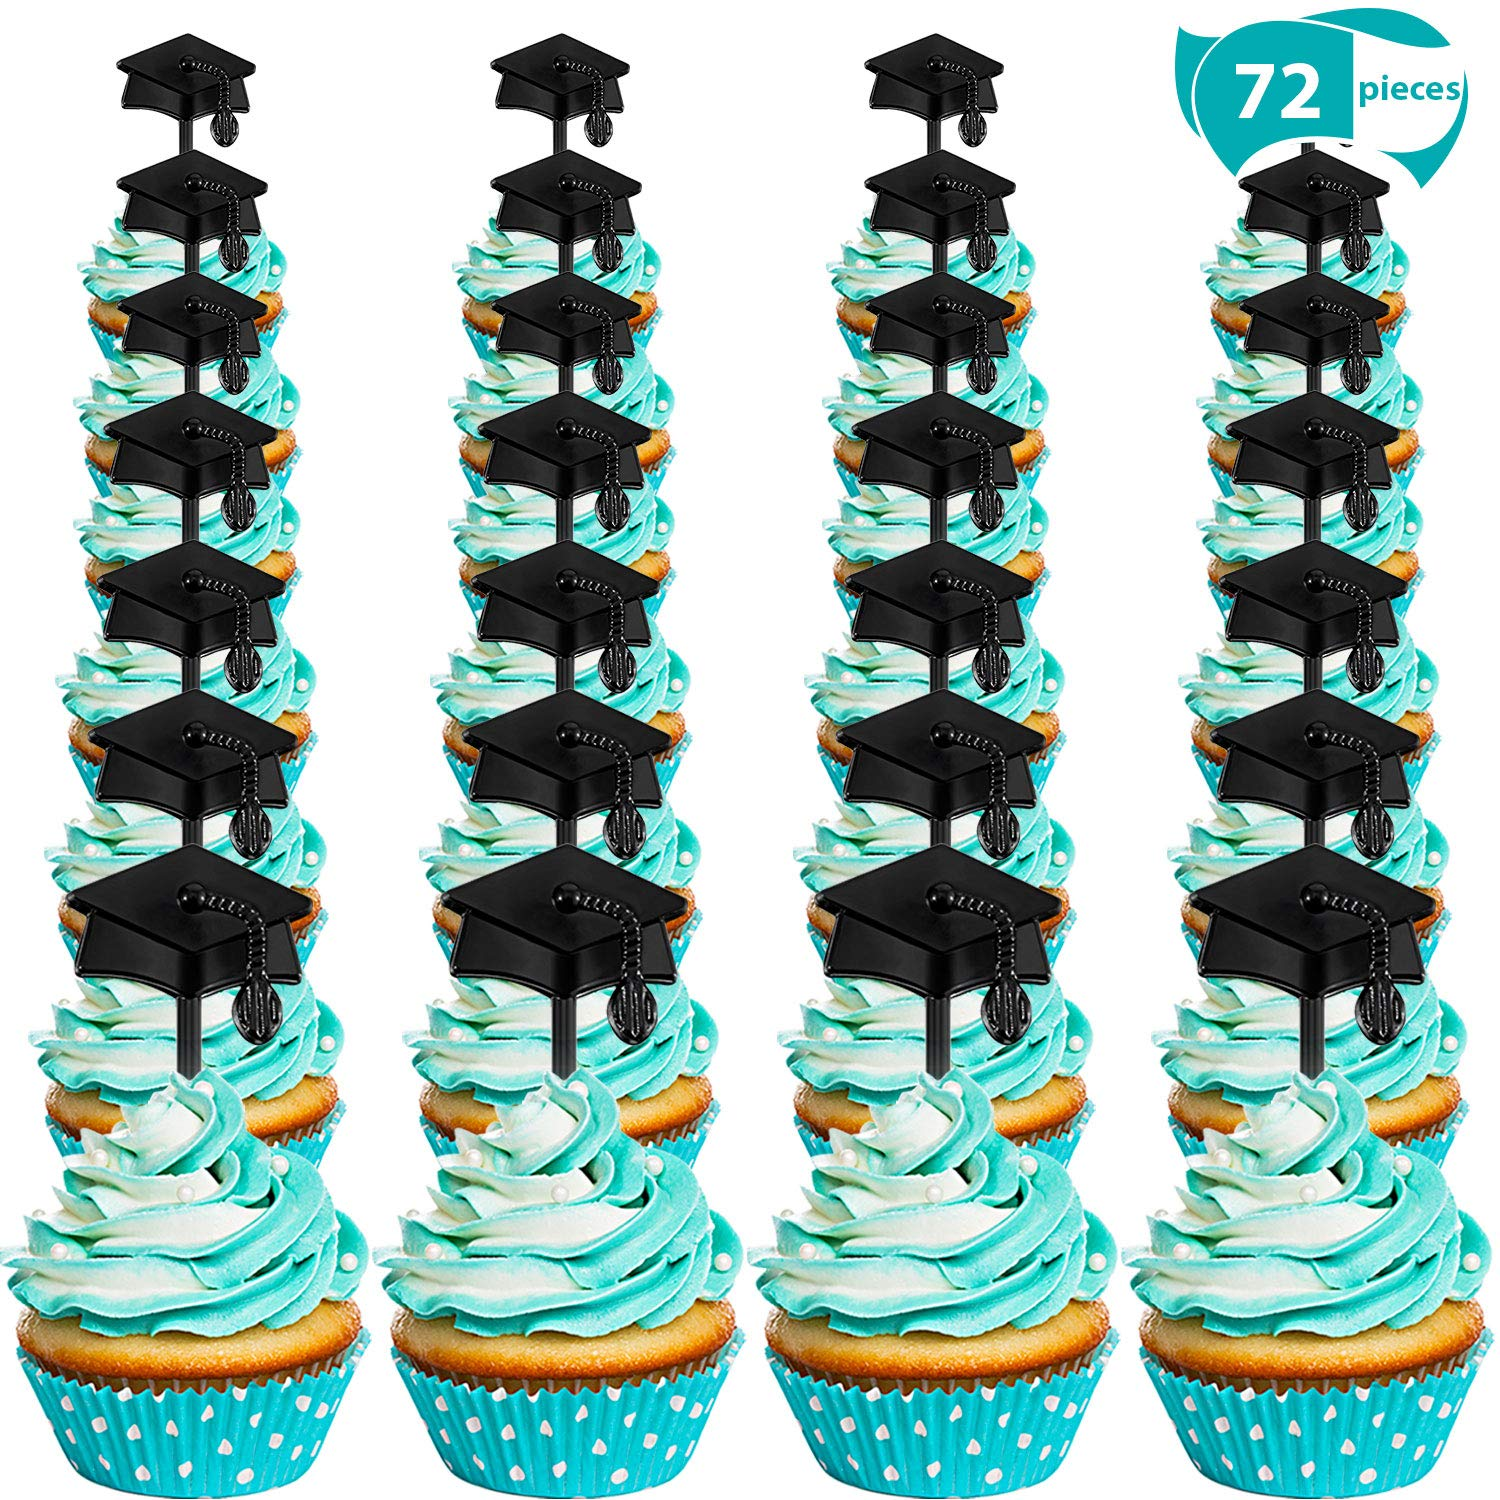 Zonon 72 Pieces 2020 Graduation Cupcake Toppers Plastic Graduation Food Toothpick Toppers Appetizer Picks for 2020 Graduation Party Supplies (72)